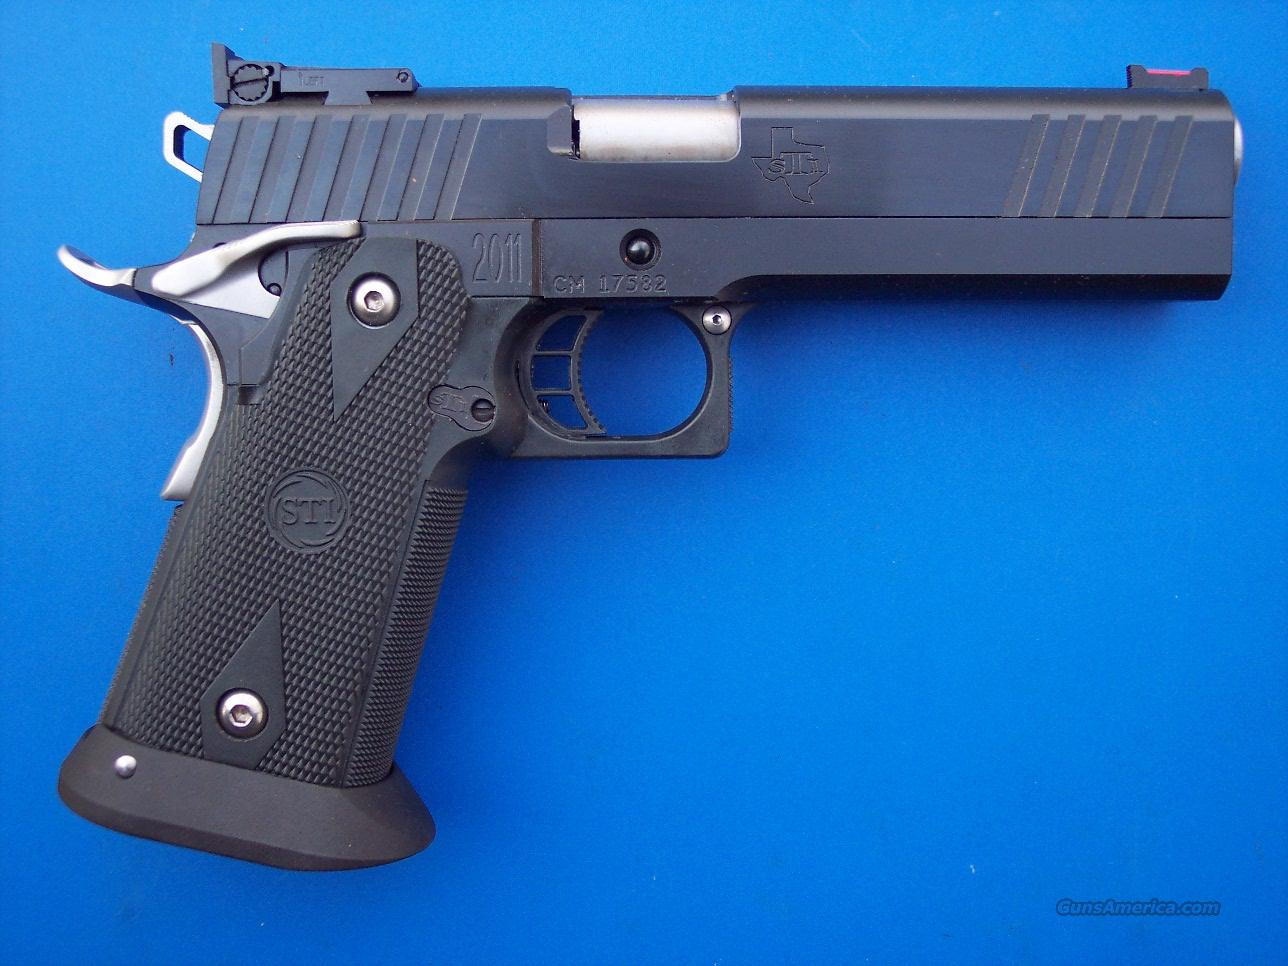 STI Edge 9mm DAWSON FO Custom 2011 *NEW*  Guns > Pistols > STI Pistols